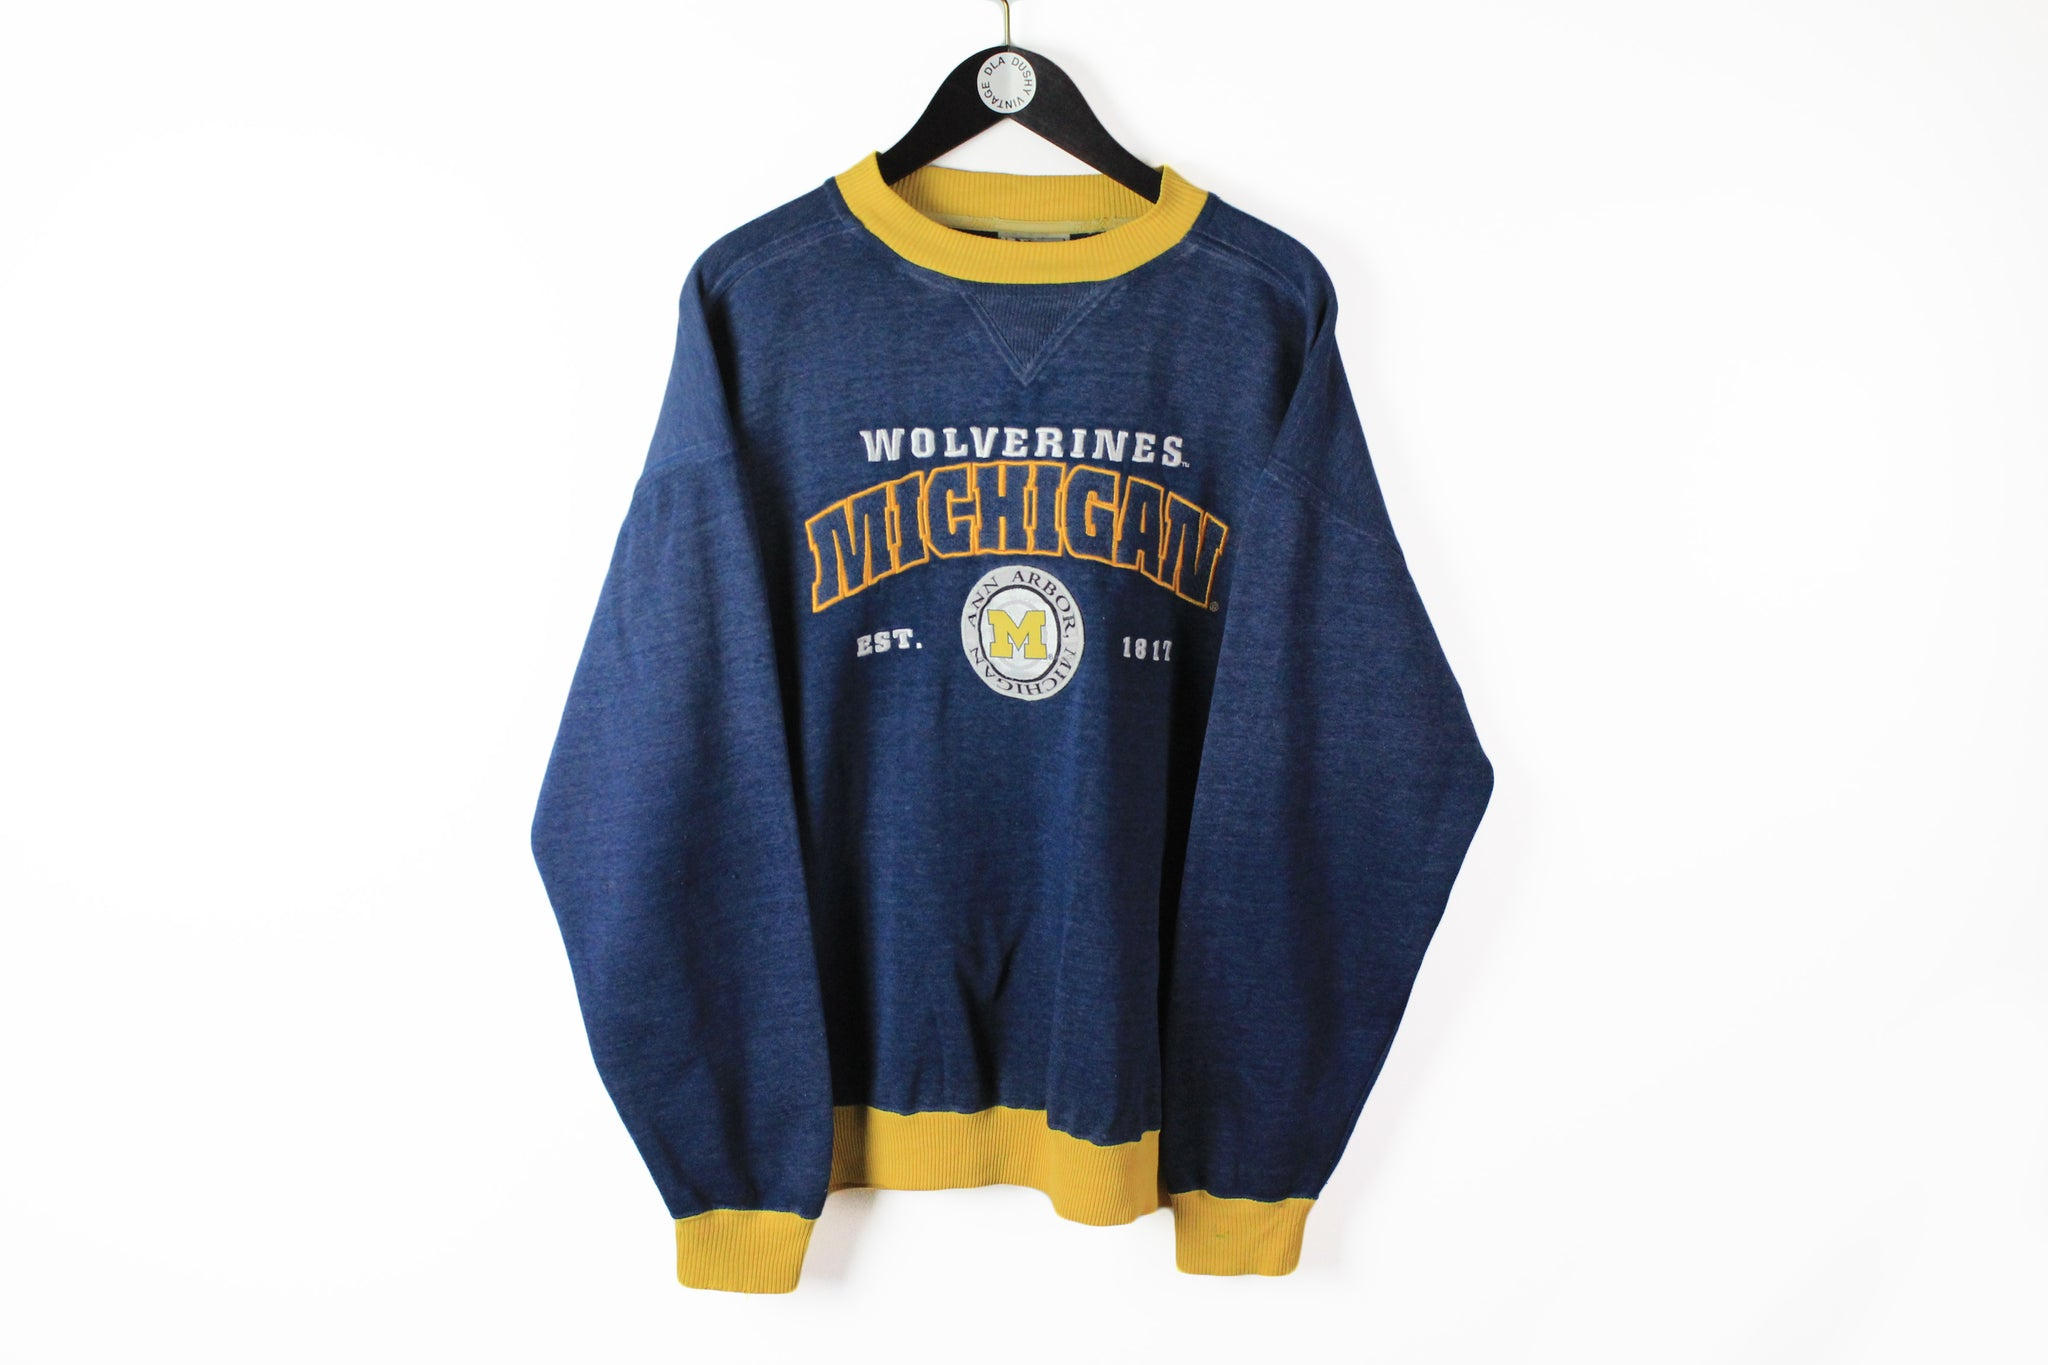 Vintage Michigan Wolverines Lee Sweatshirt Large blue yellow 90s sport big logo University style jumper